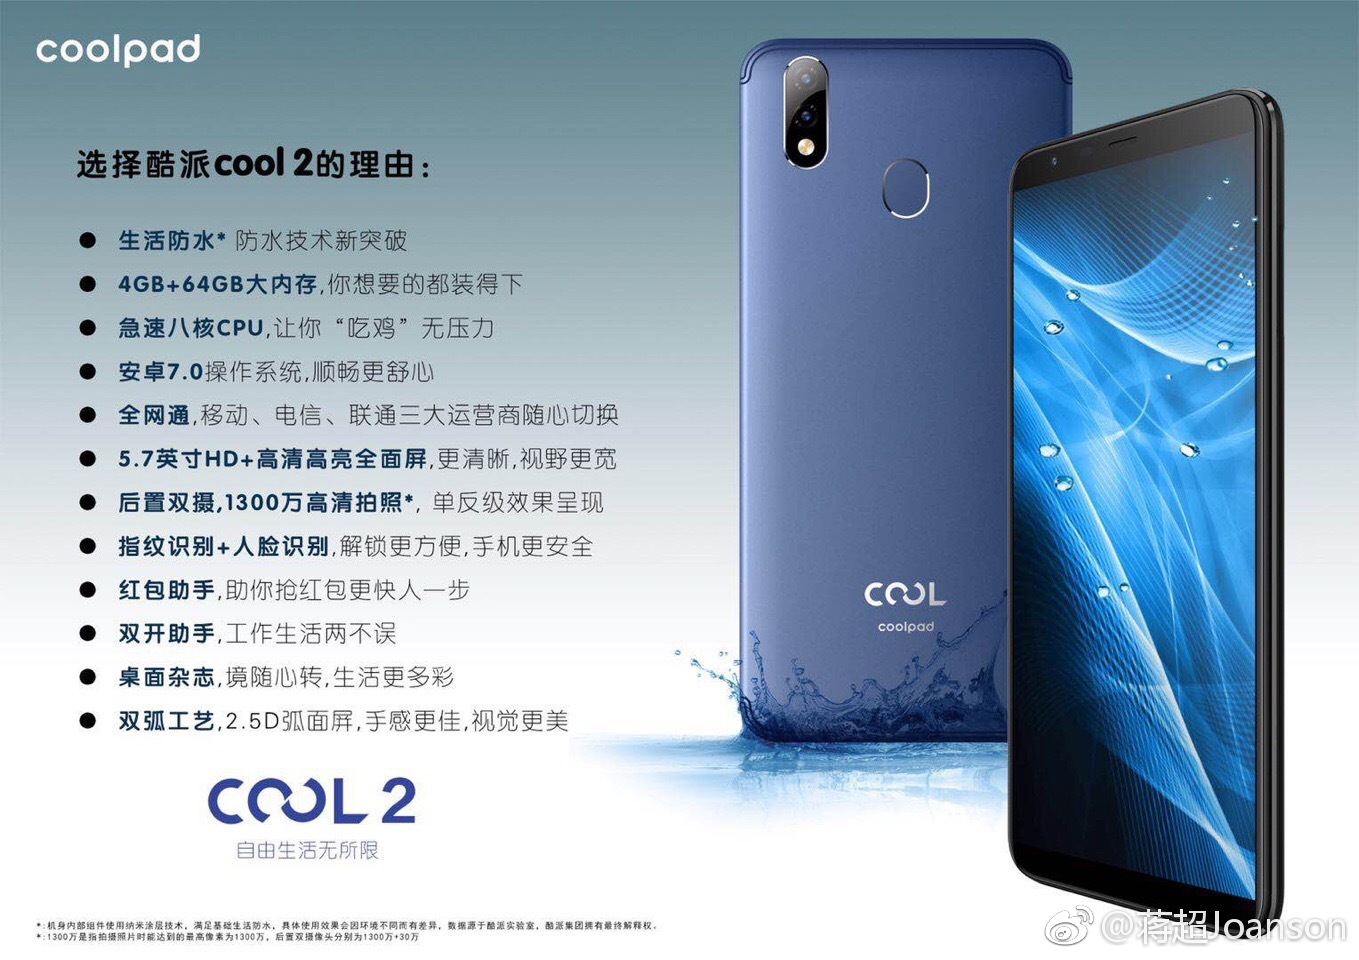 Coolpad-Cool-2-official-image-2